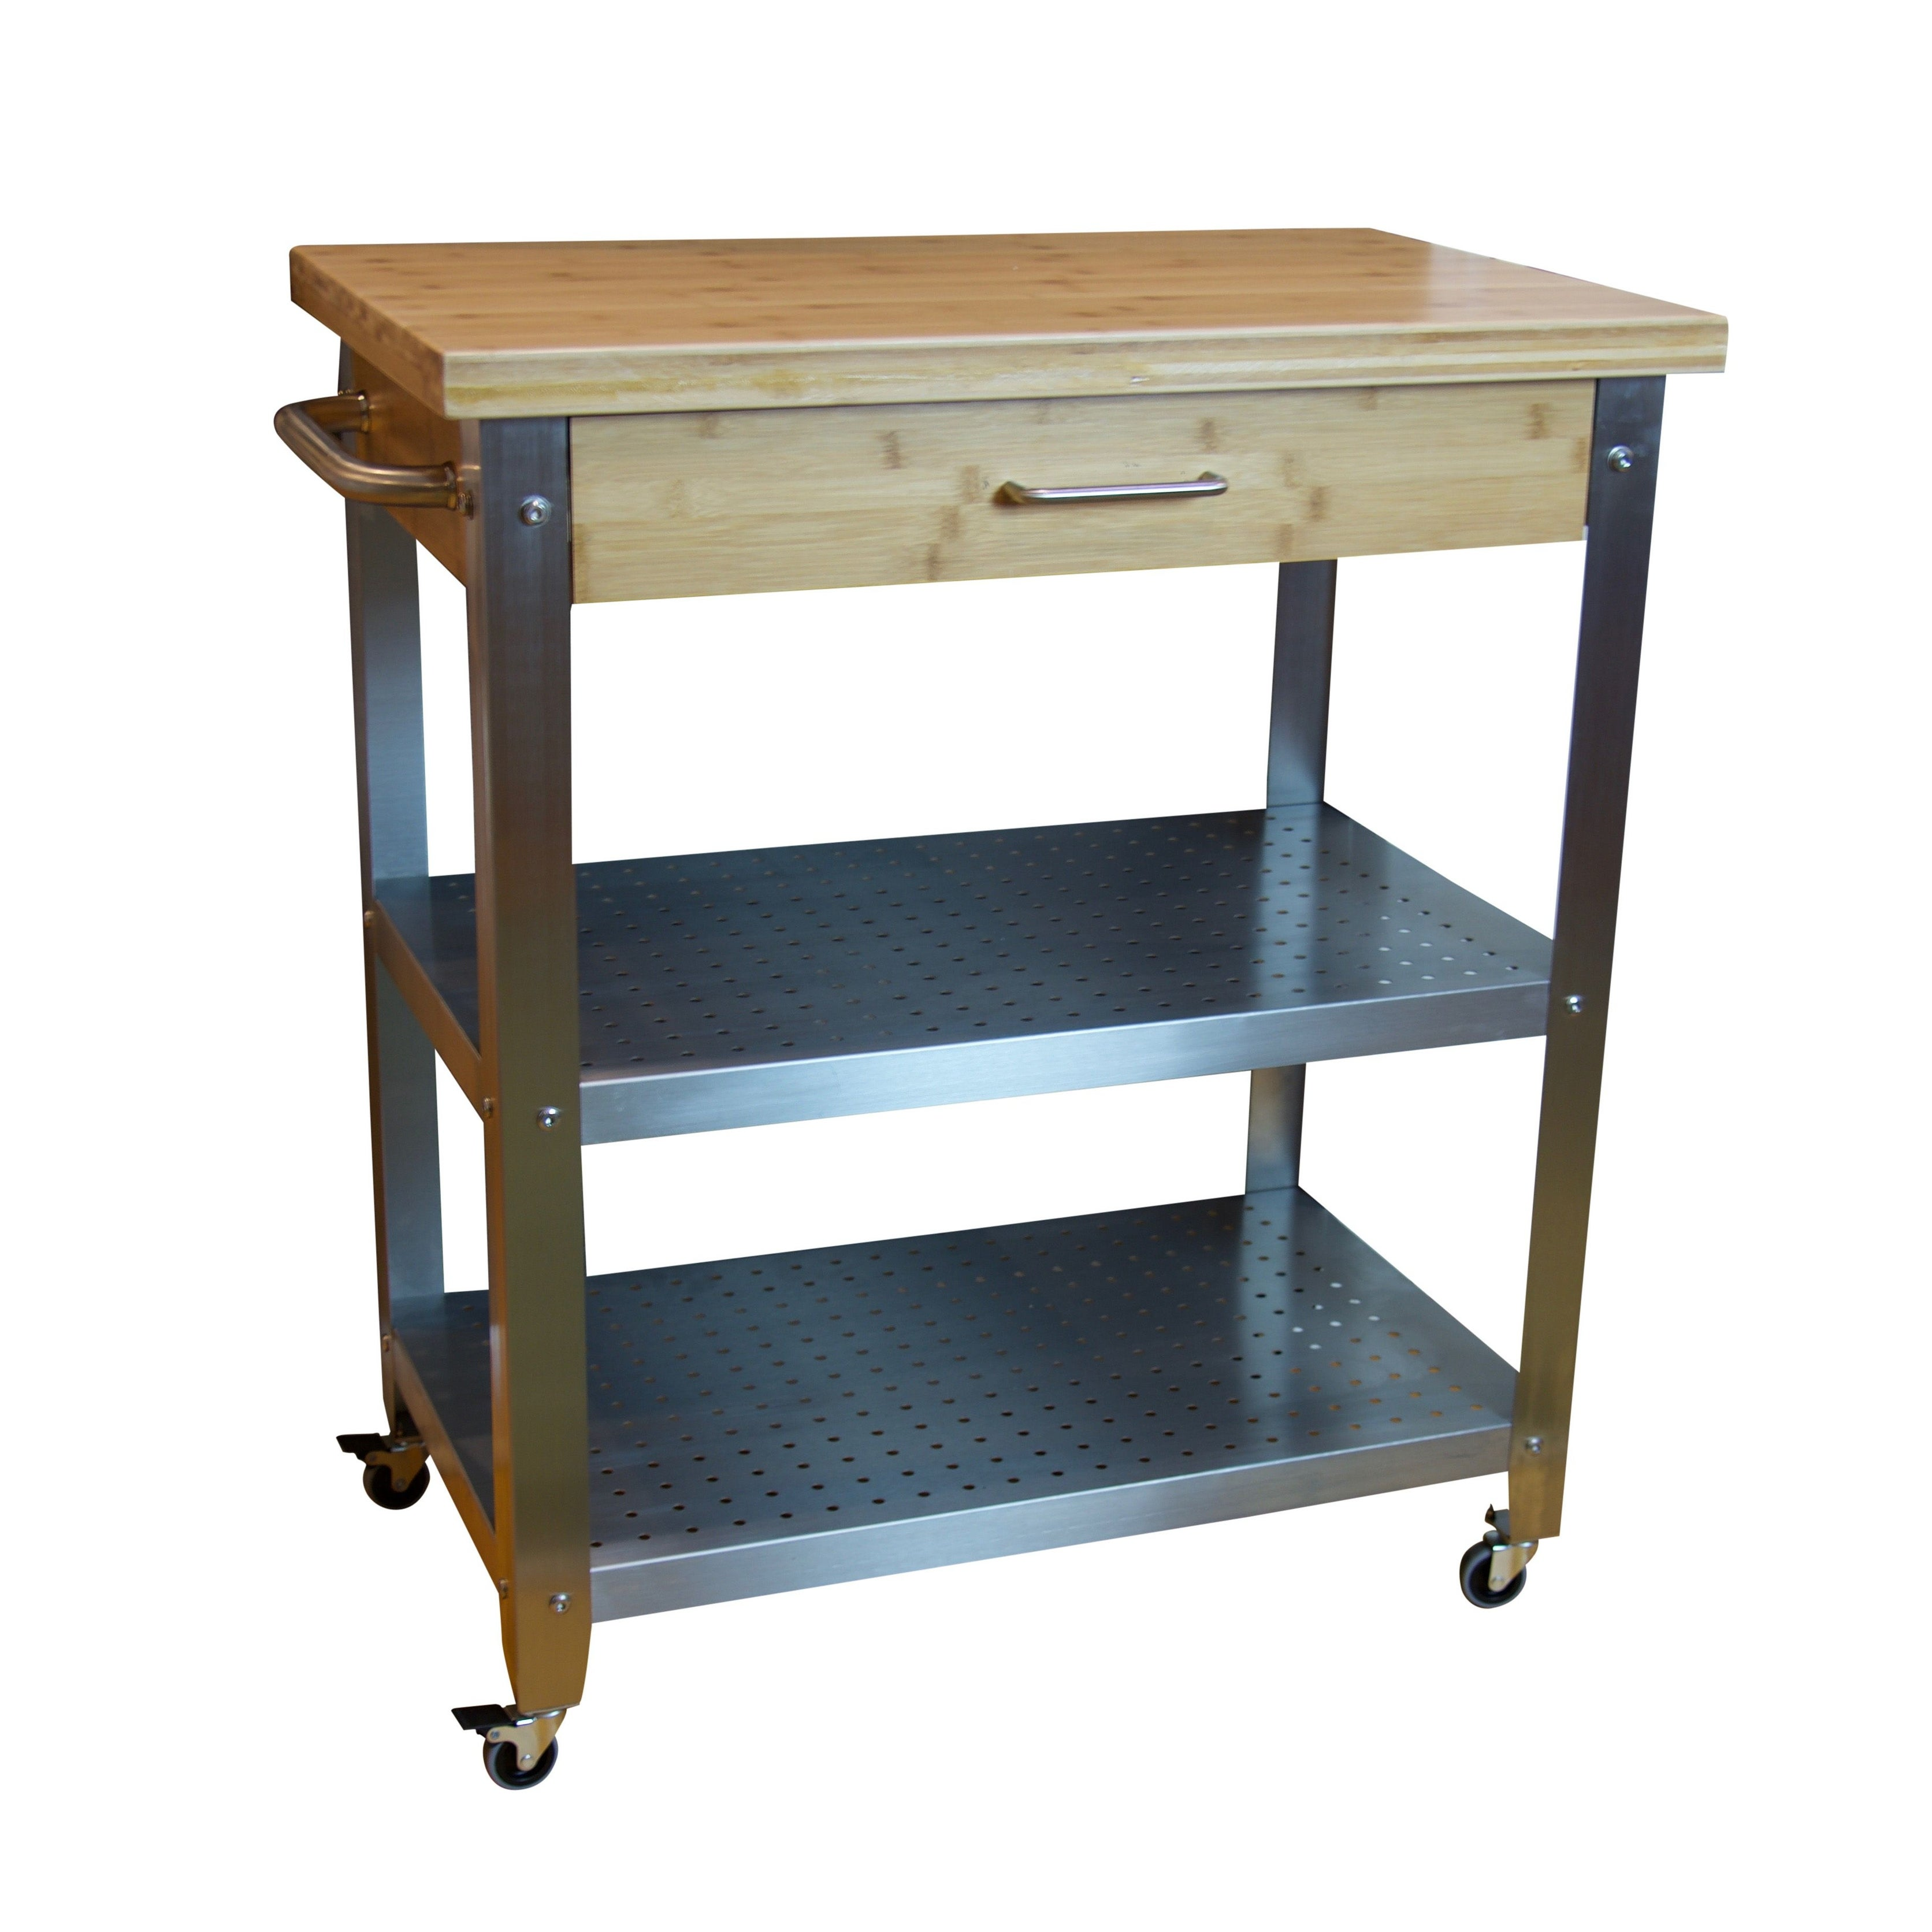 Bamboo Stainless Steel Rolling Kitchen Cart With Drawer 2 Shelves Overstock 32202746